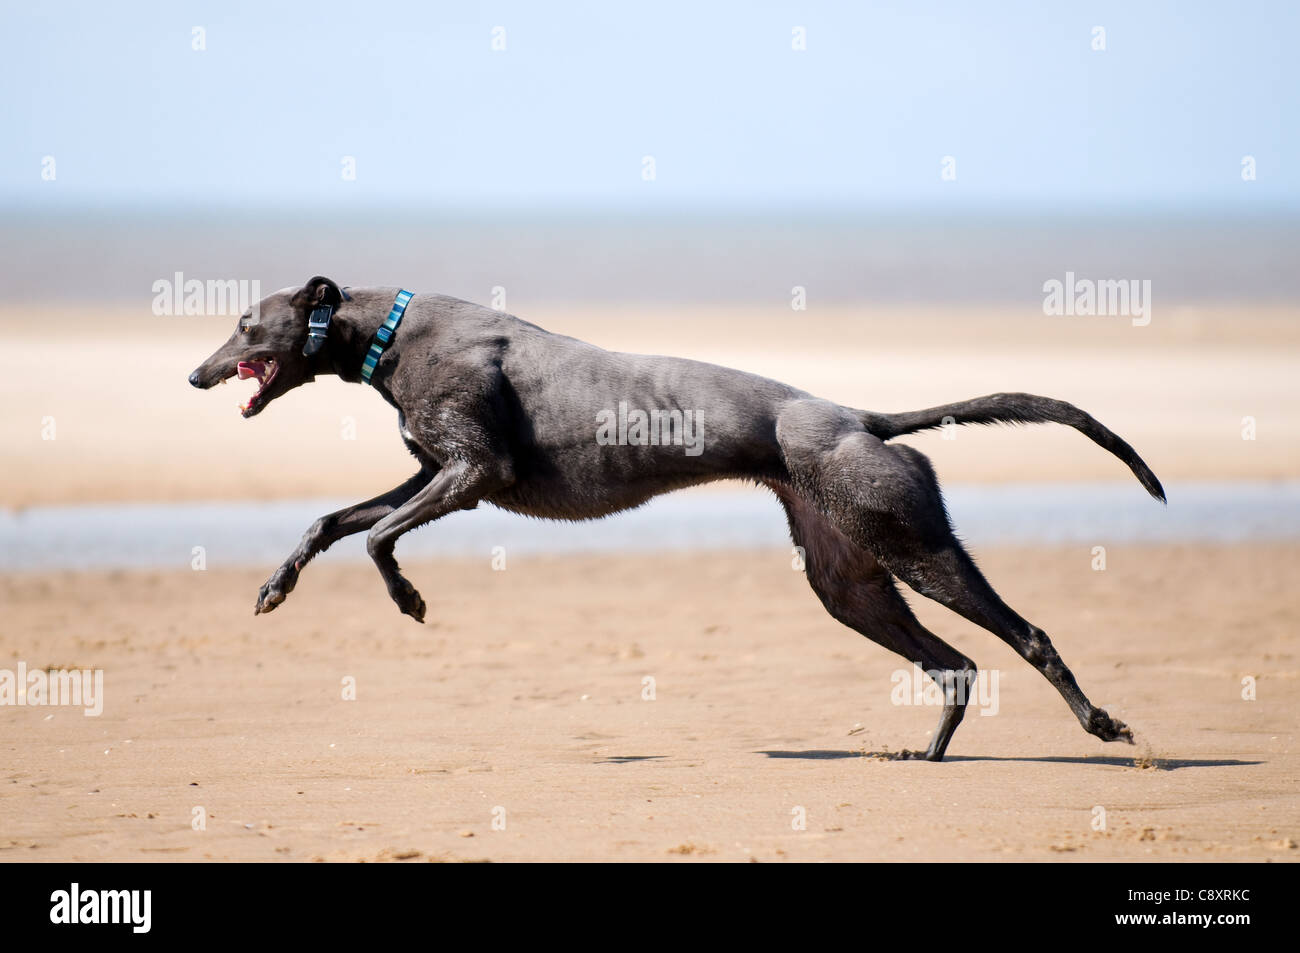 Greyhound running in full flight across the sand at Old Hunstanton, Norfolk, with the sea in the background. - Stock Image